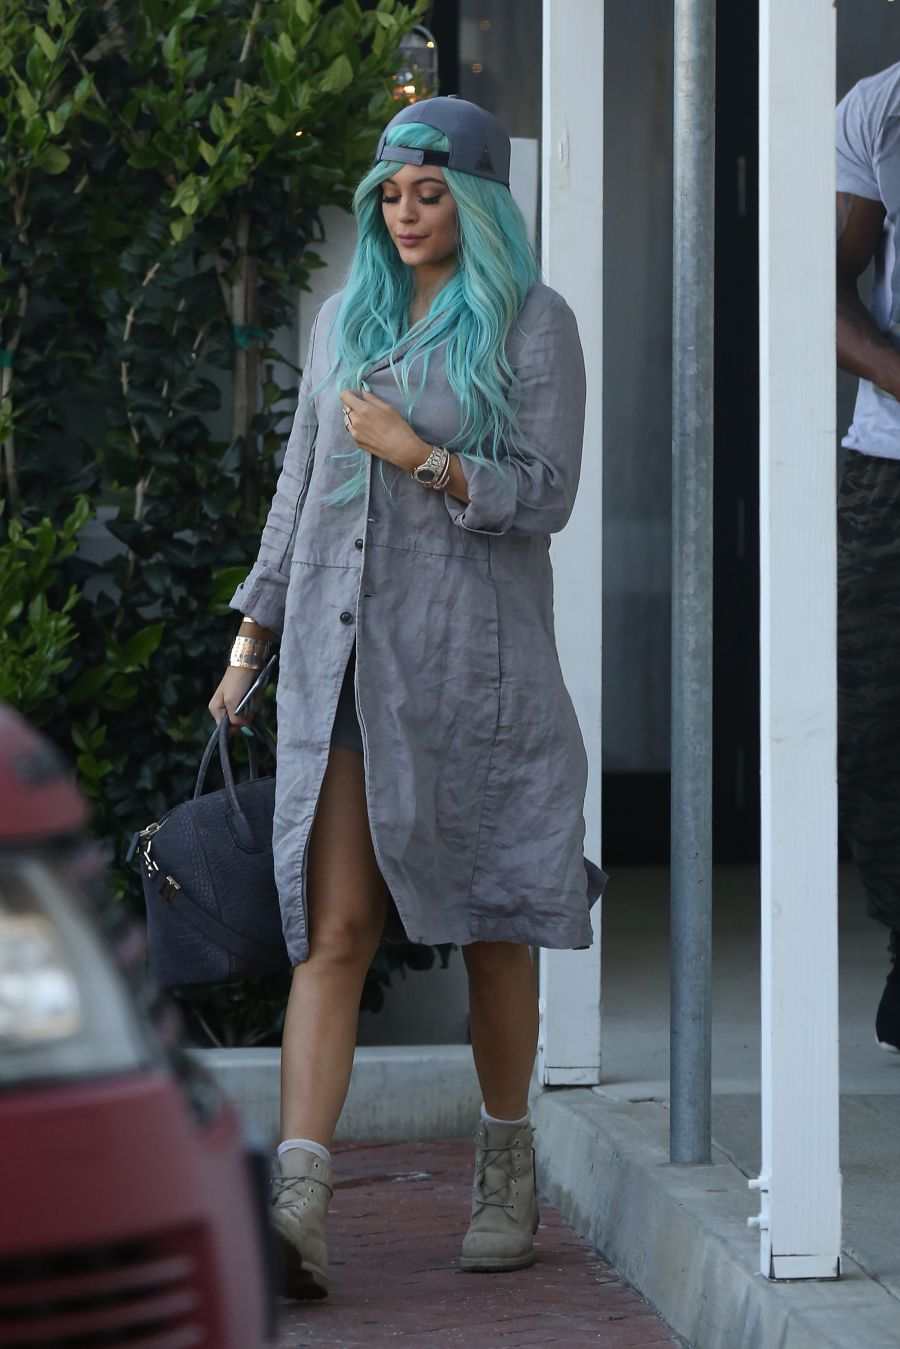 Kylie Jenner at Mr. Chow in Beverly Hills